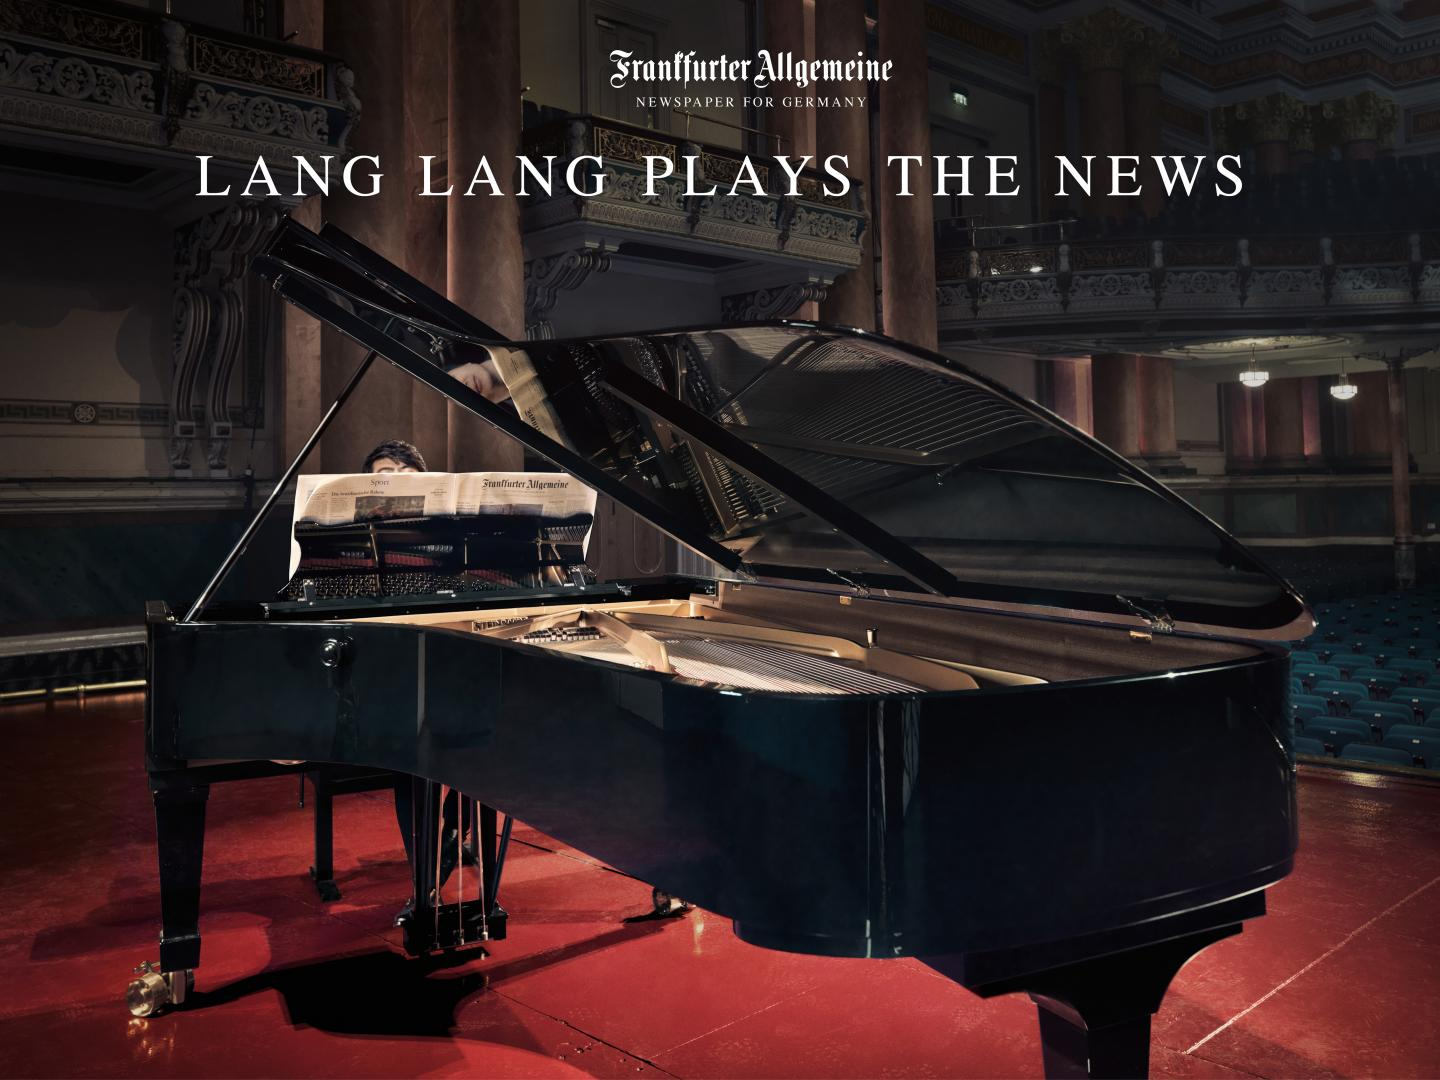 Lang Lang plays the F.A.Z. - Germany's leading newspaper Thumbnail